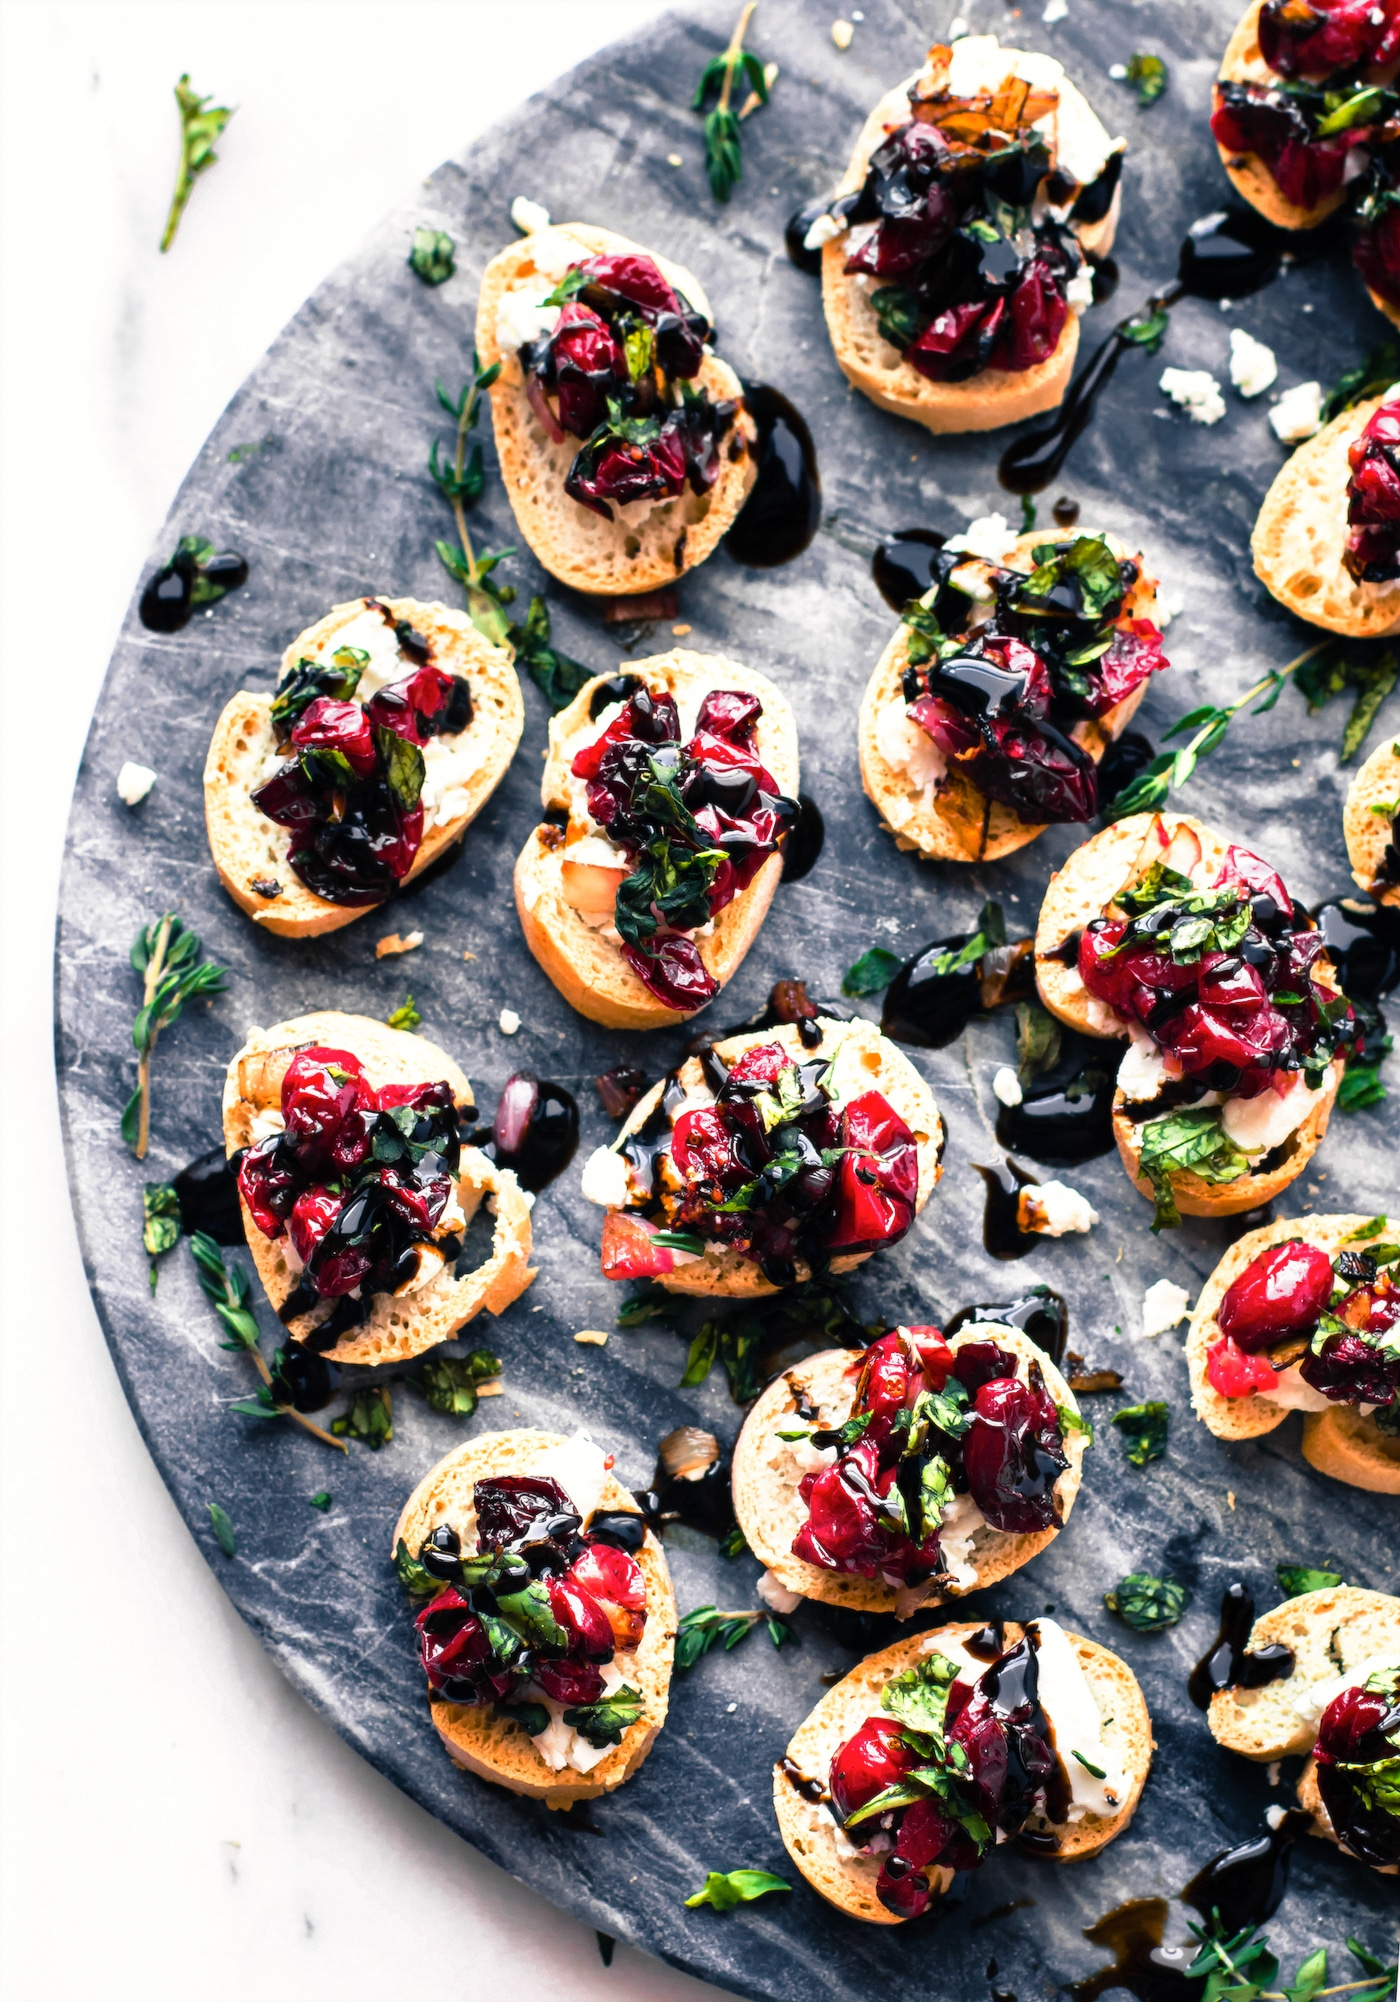 A Gluten Free Crostini baked appetizer recipe for the holidays! Cranberry goat cheese gluten free crostini with roasted balsamic cranberries, onion, basil. www.cottercrunch.com